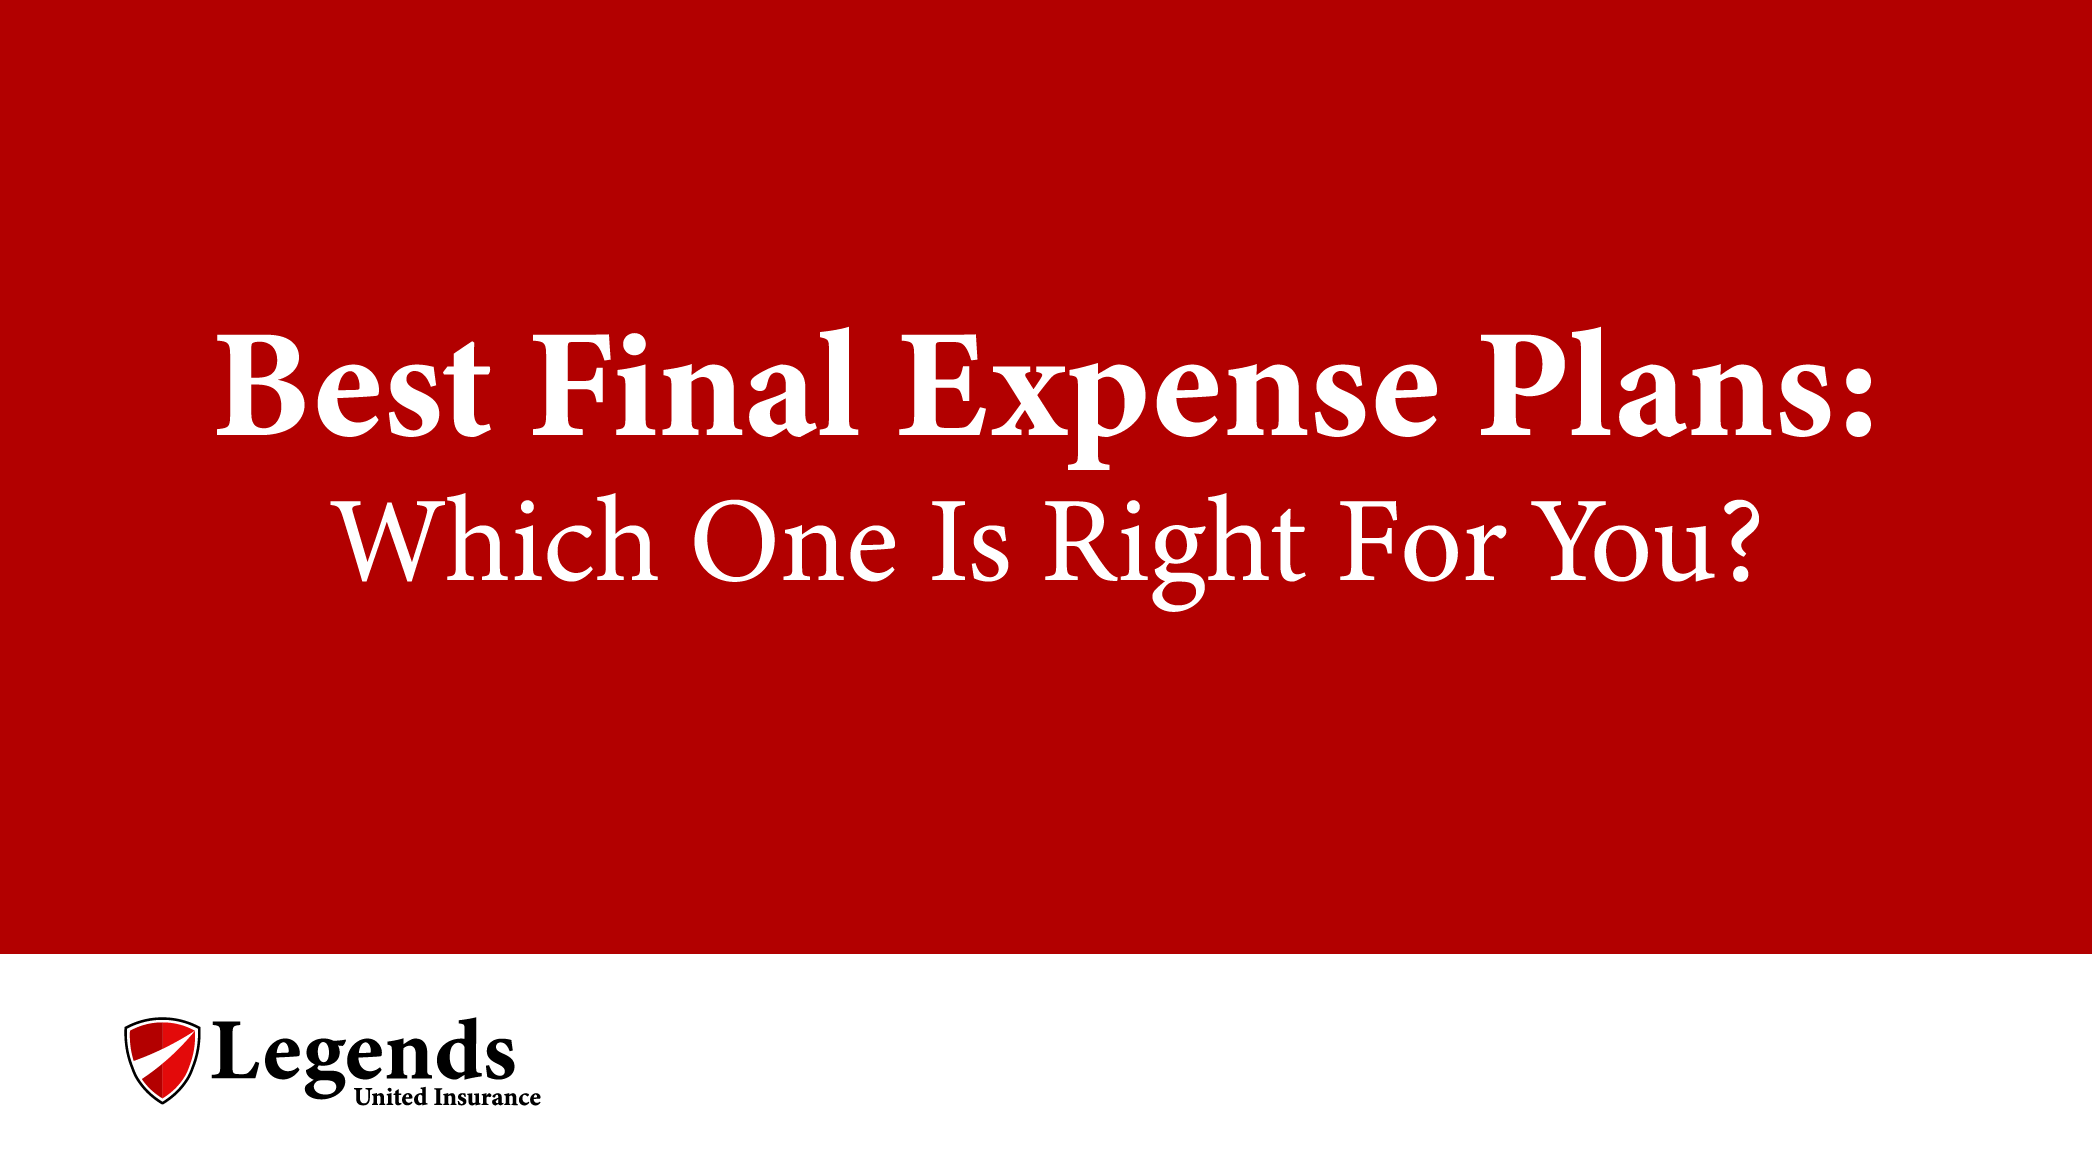 Best Final Expense Plans Which One Is Right For You Legends United